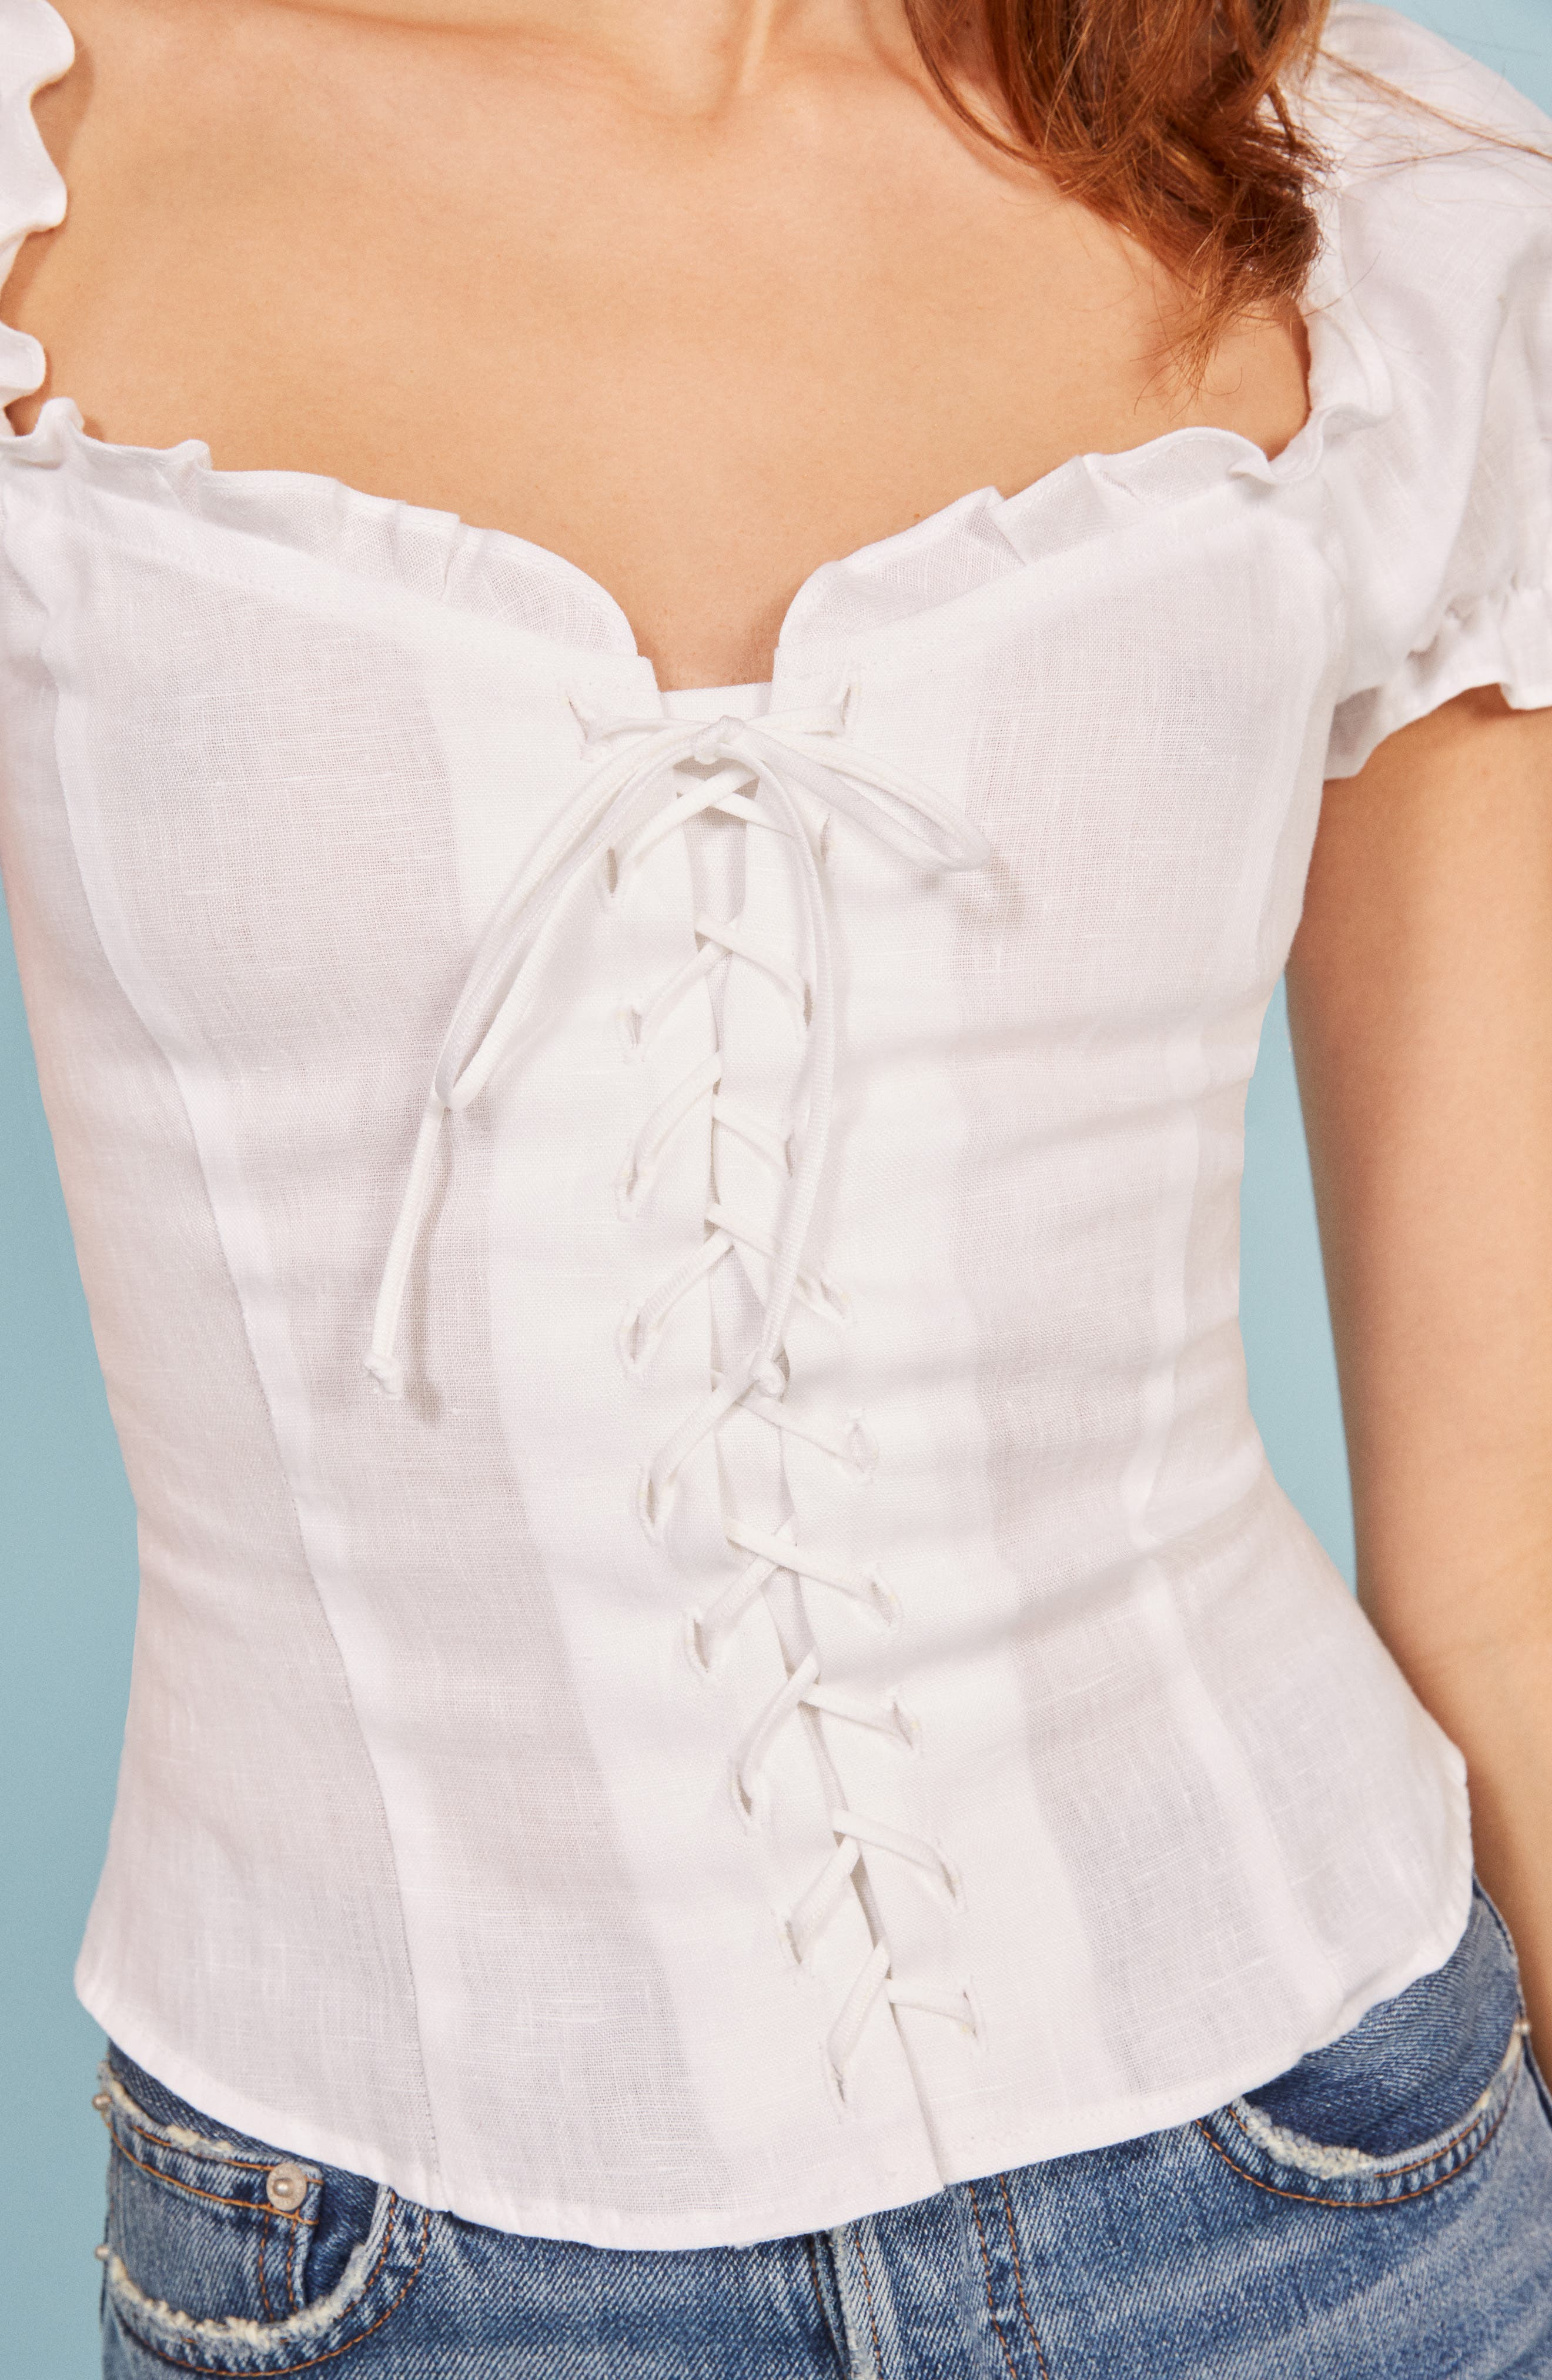 Cassidy Corset Top,                             Alternate thumbnail 4, color,                             WHITE